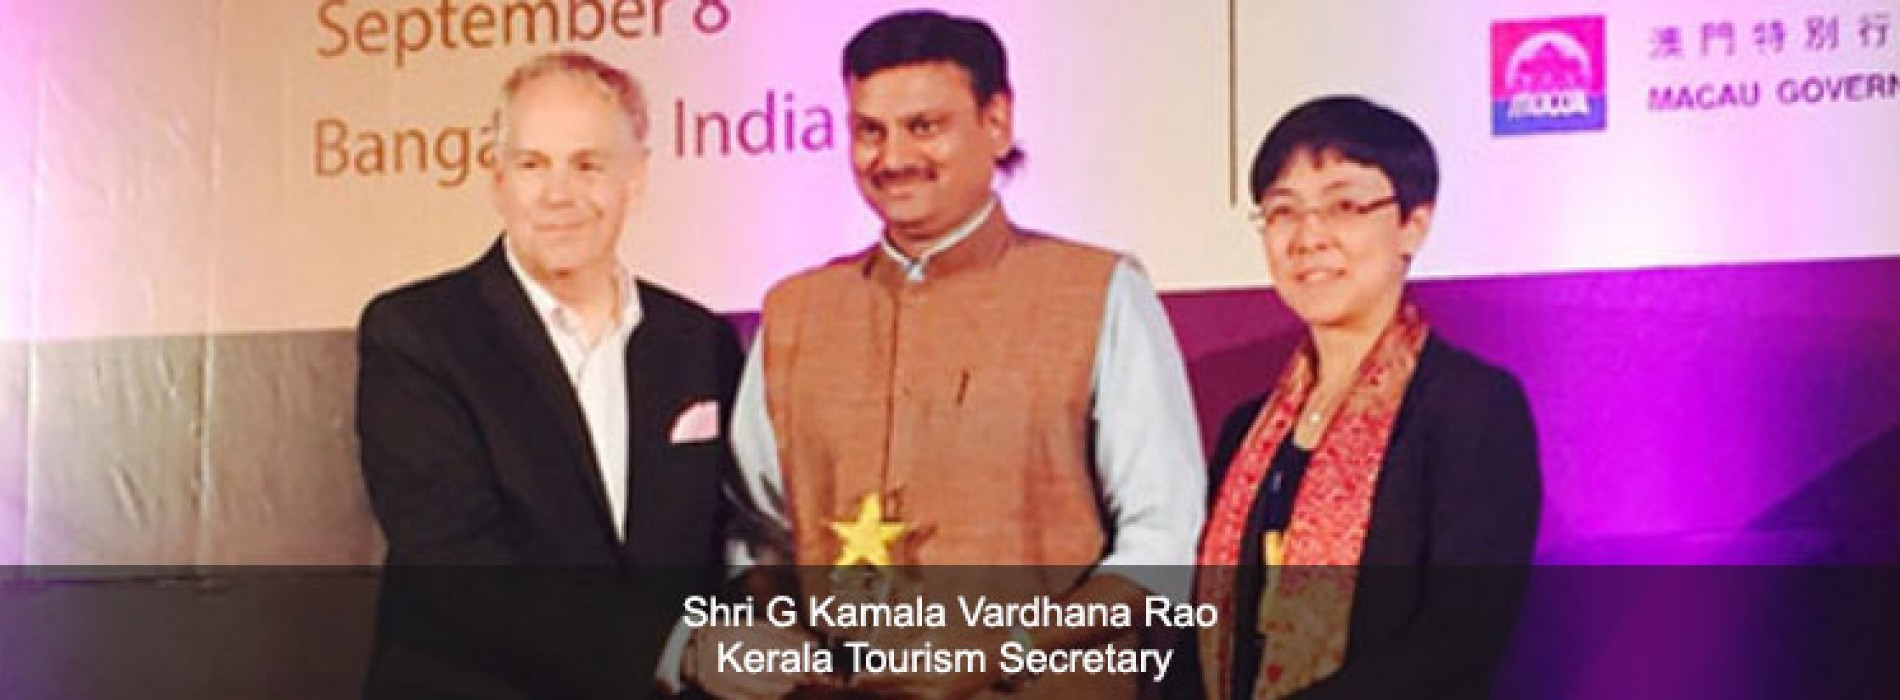 Muziris wins PATA Gold Honour for Kerala Tourism